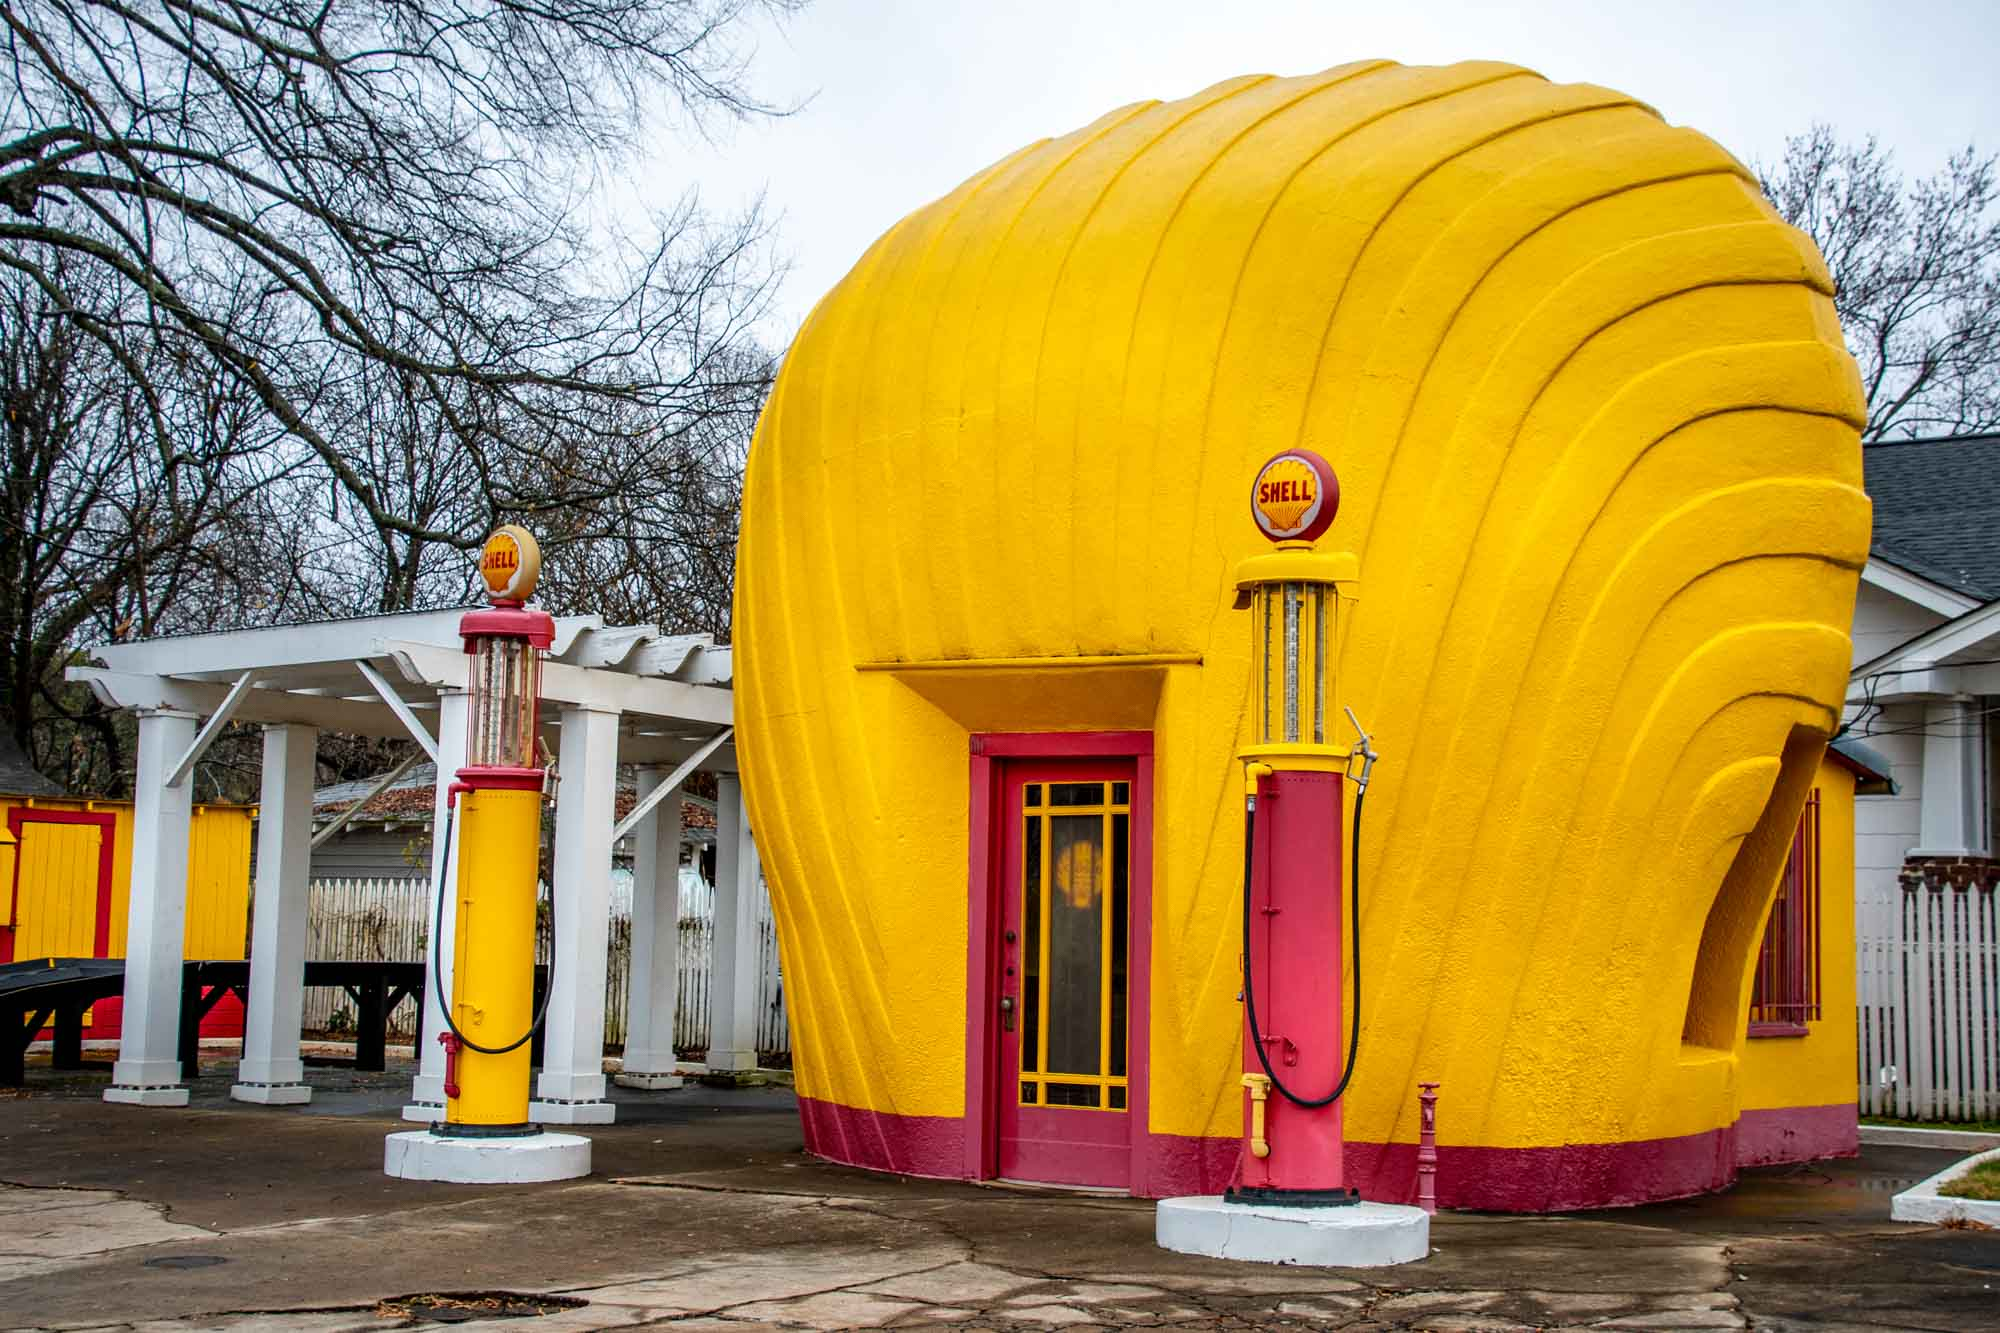 Building shaped like a large yellow clamshell with two gas pumps in front